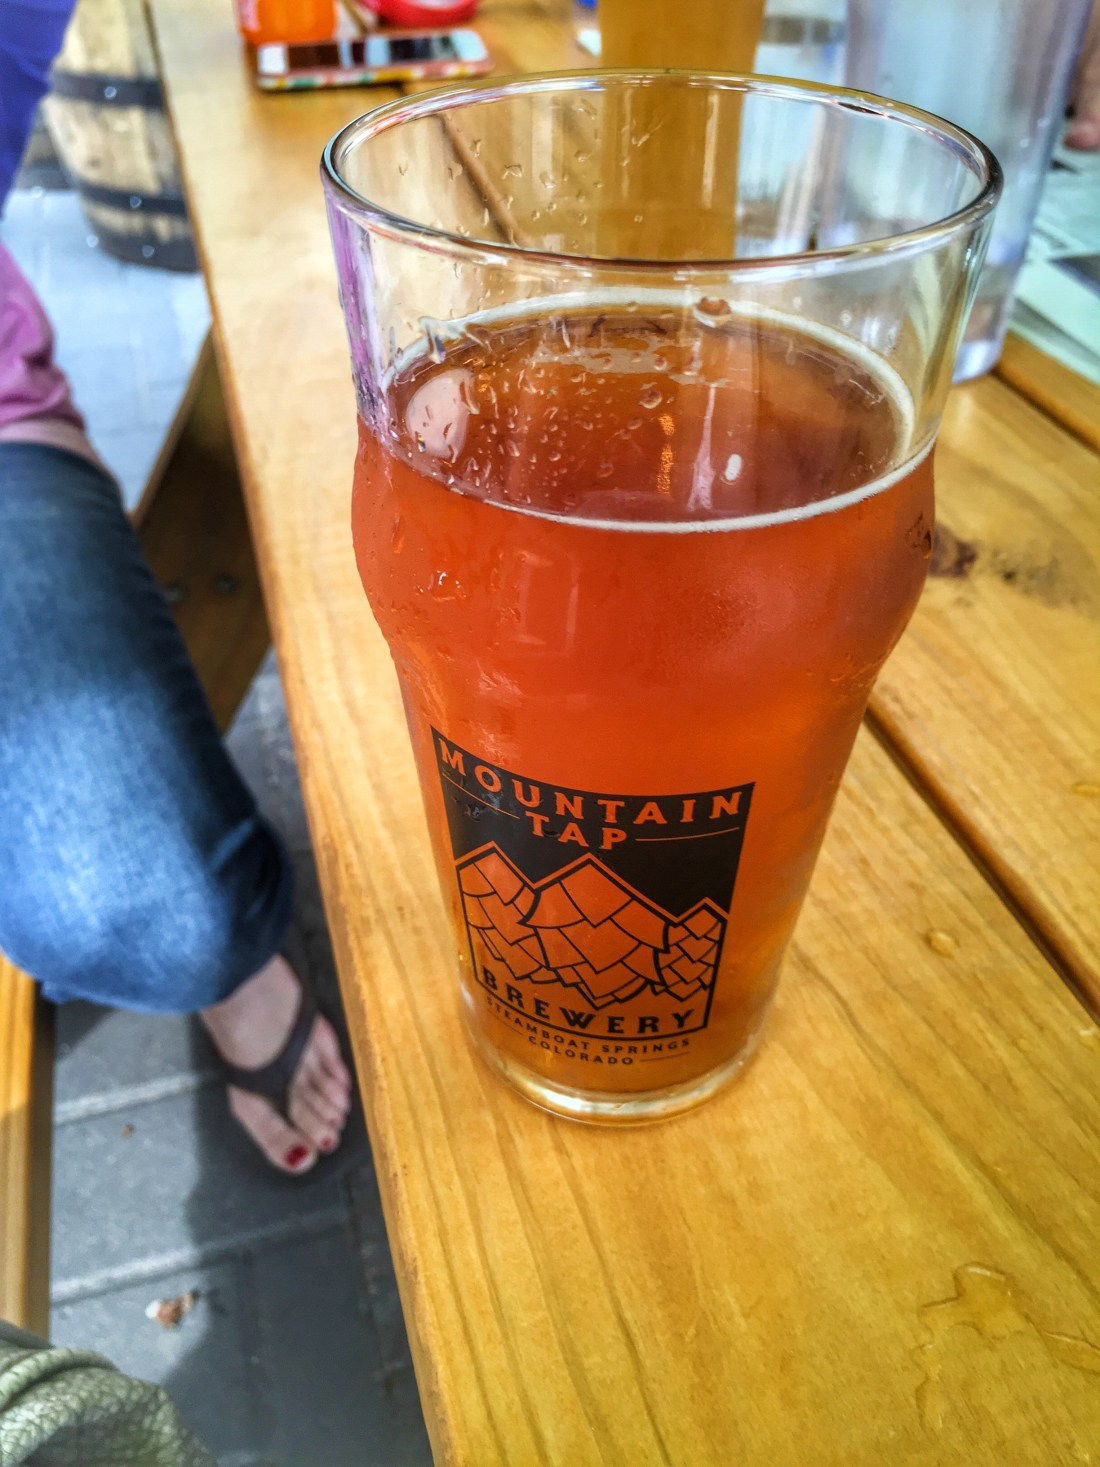 Welcome to Steamboat Springs' Mountain Tap Brewery